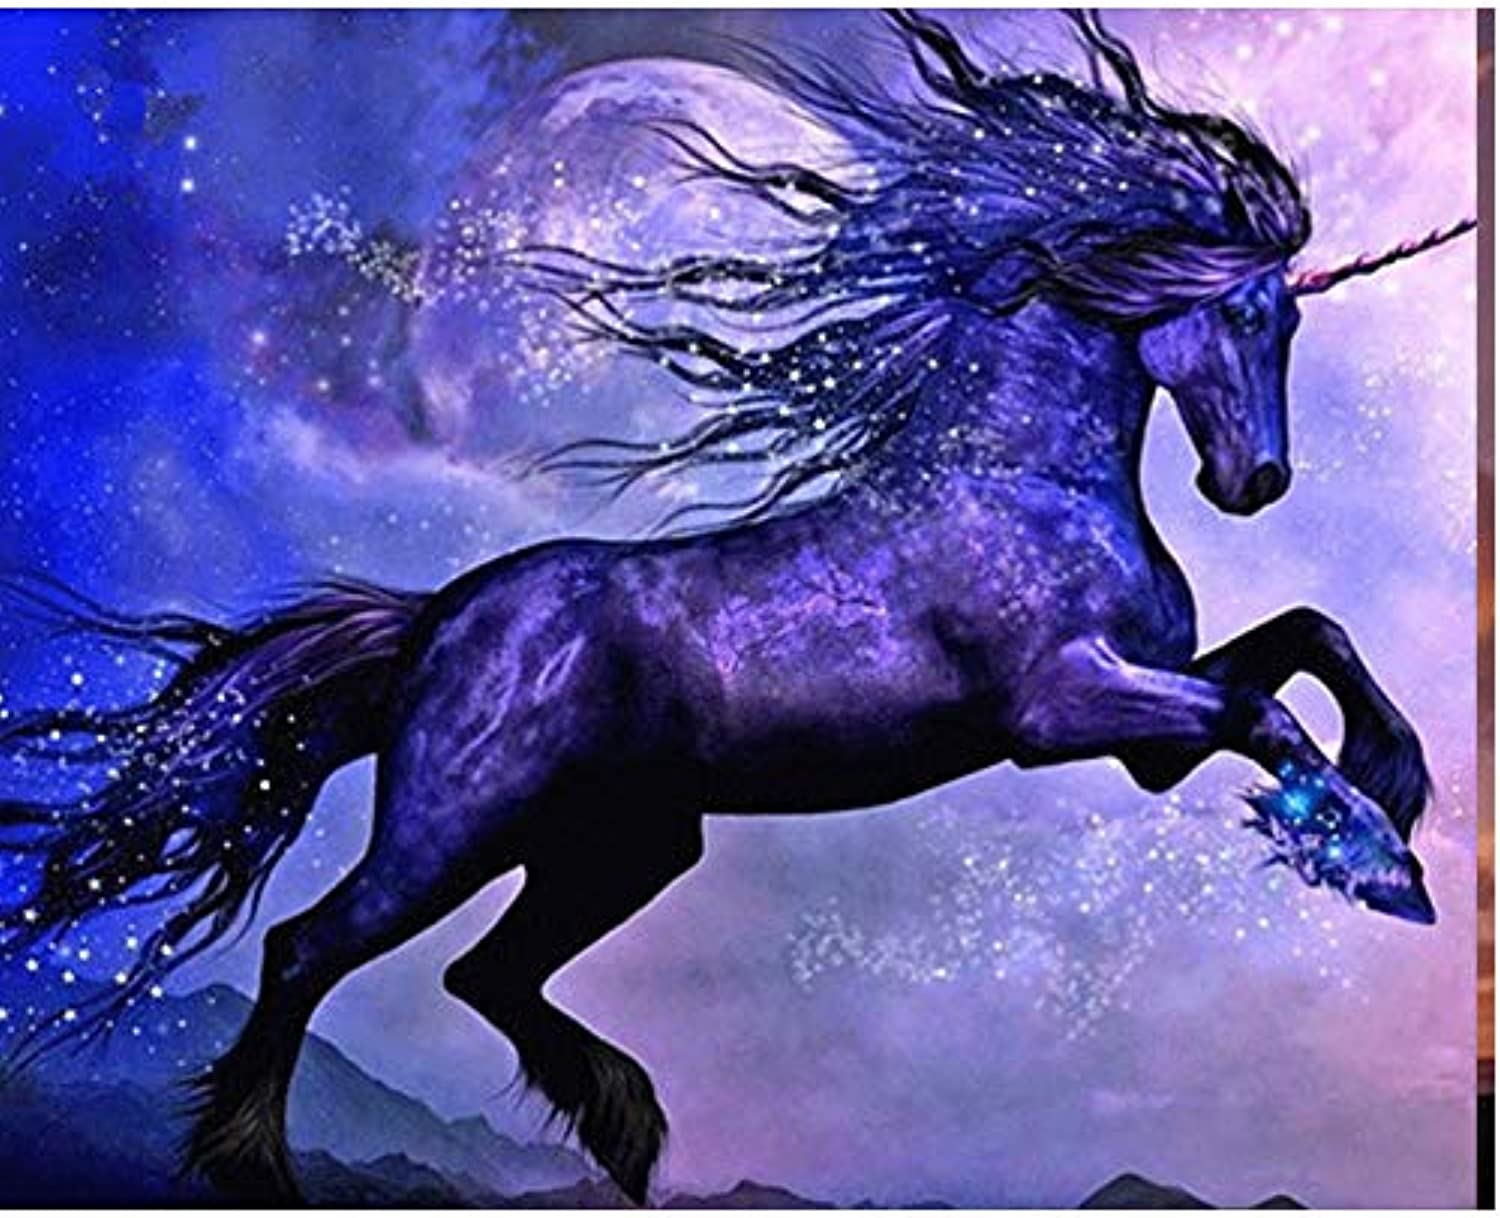 DIY Oil Paint by Number Kit for Adults Beginner 16x20 Inch - Moonlit Unicorn,Drawing with Brushes Living Room Decor Decorations Gifts (Framed)